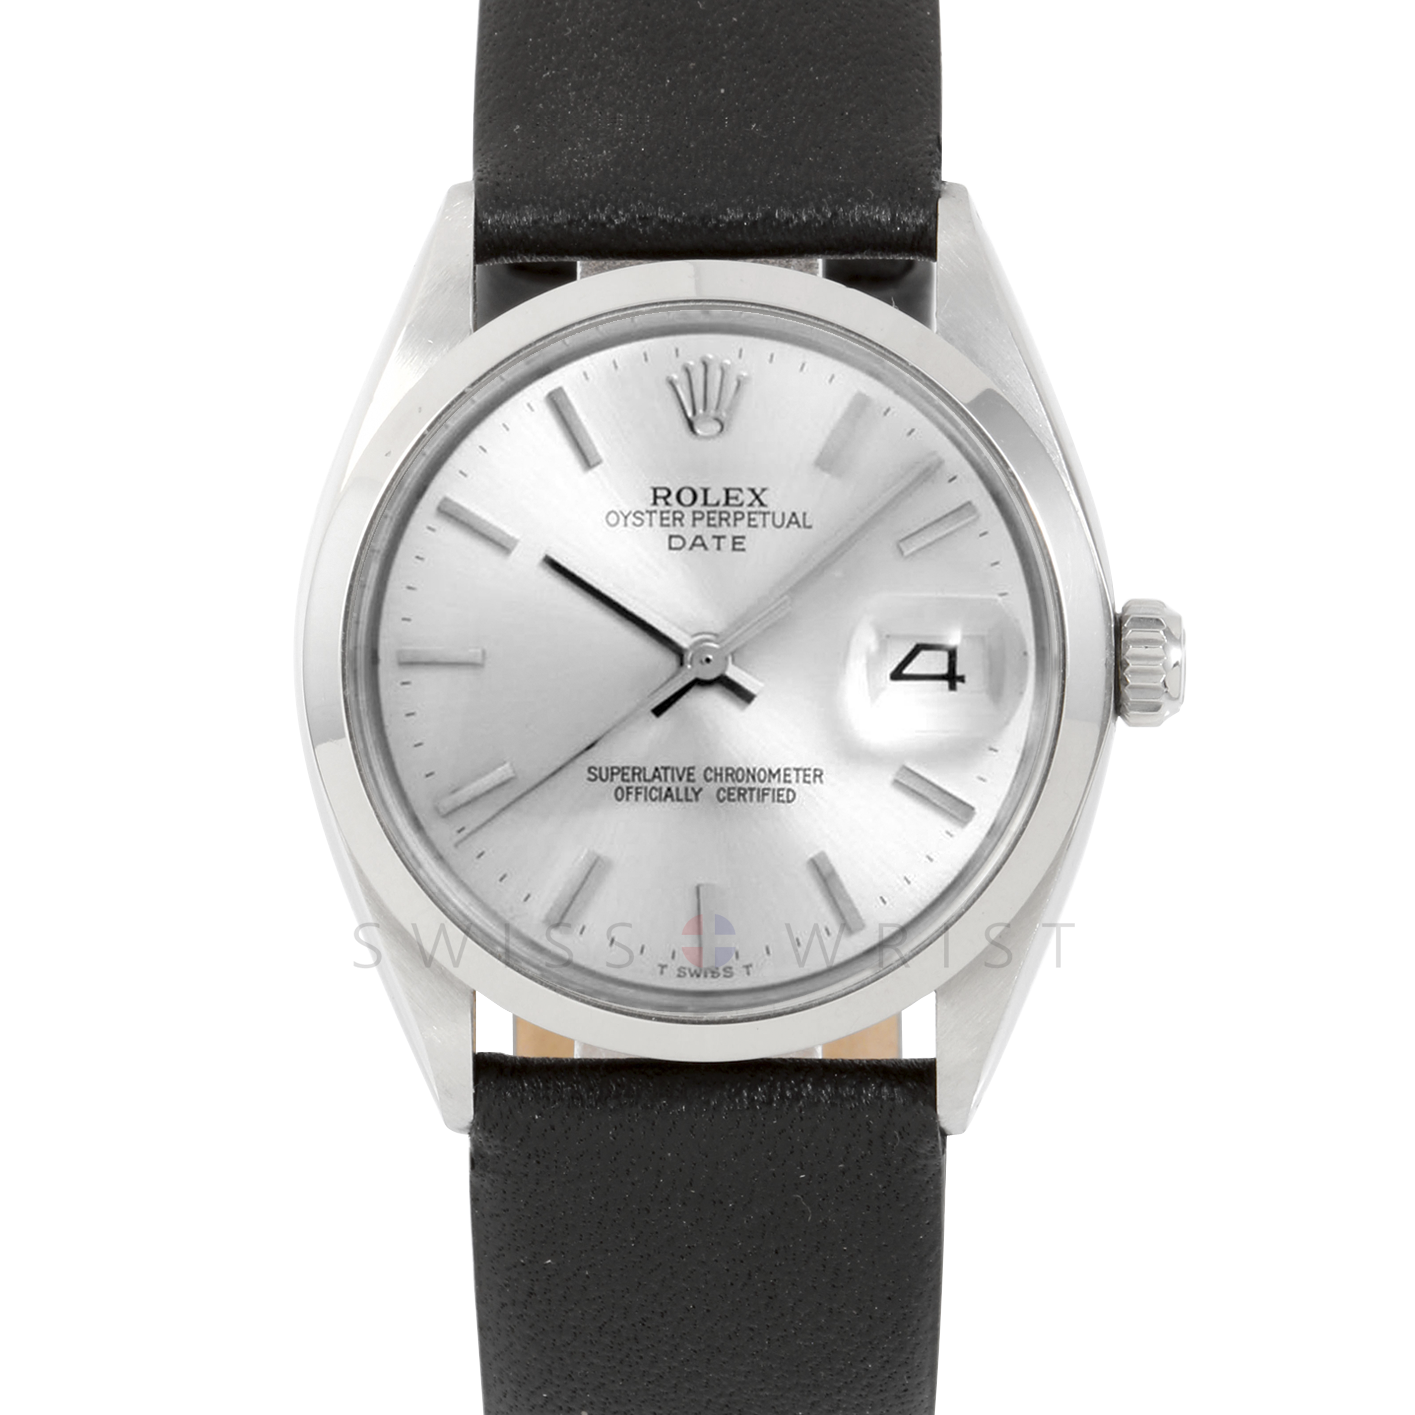 Rolex 34mm Date Model - Silver Stick Dial - Stainless Steel - Smooth Bezel On A Black Leather Strap - Pre-Owned